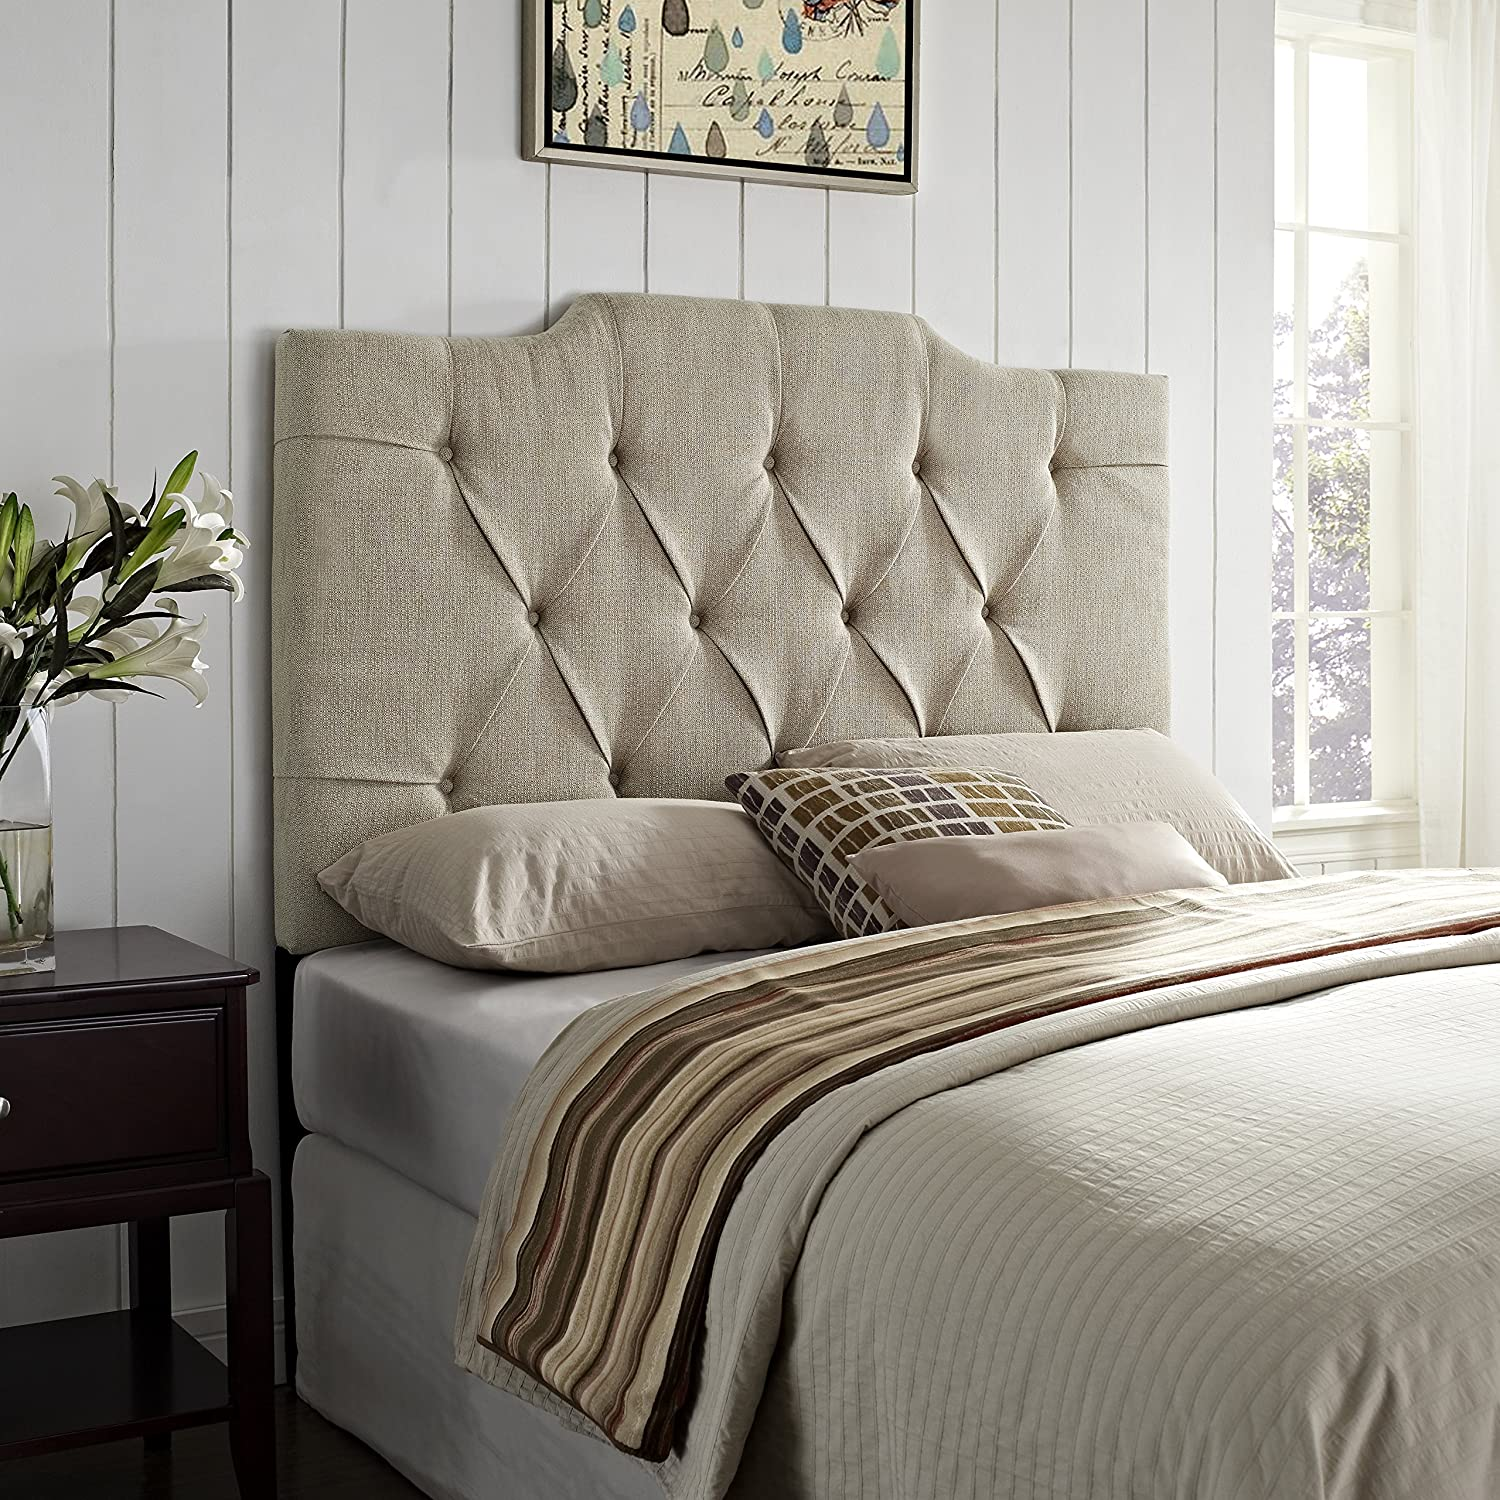 Amazon.com - Pulaski Everly Panel Tufted Linen Headboard, 6/0-6/6-Inch - - Amazon.com - Pulaski Everly Panel Tufted Linen Headboard, 6/0-6/6